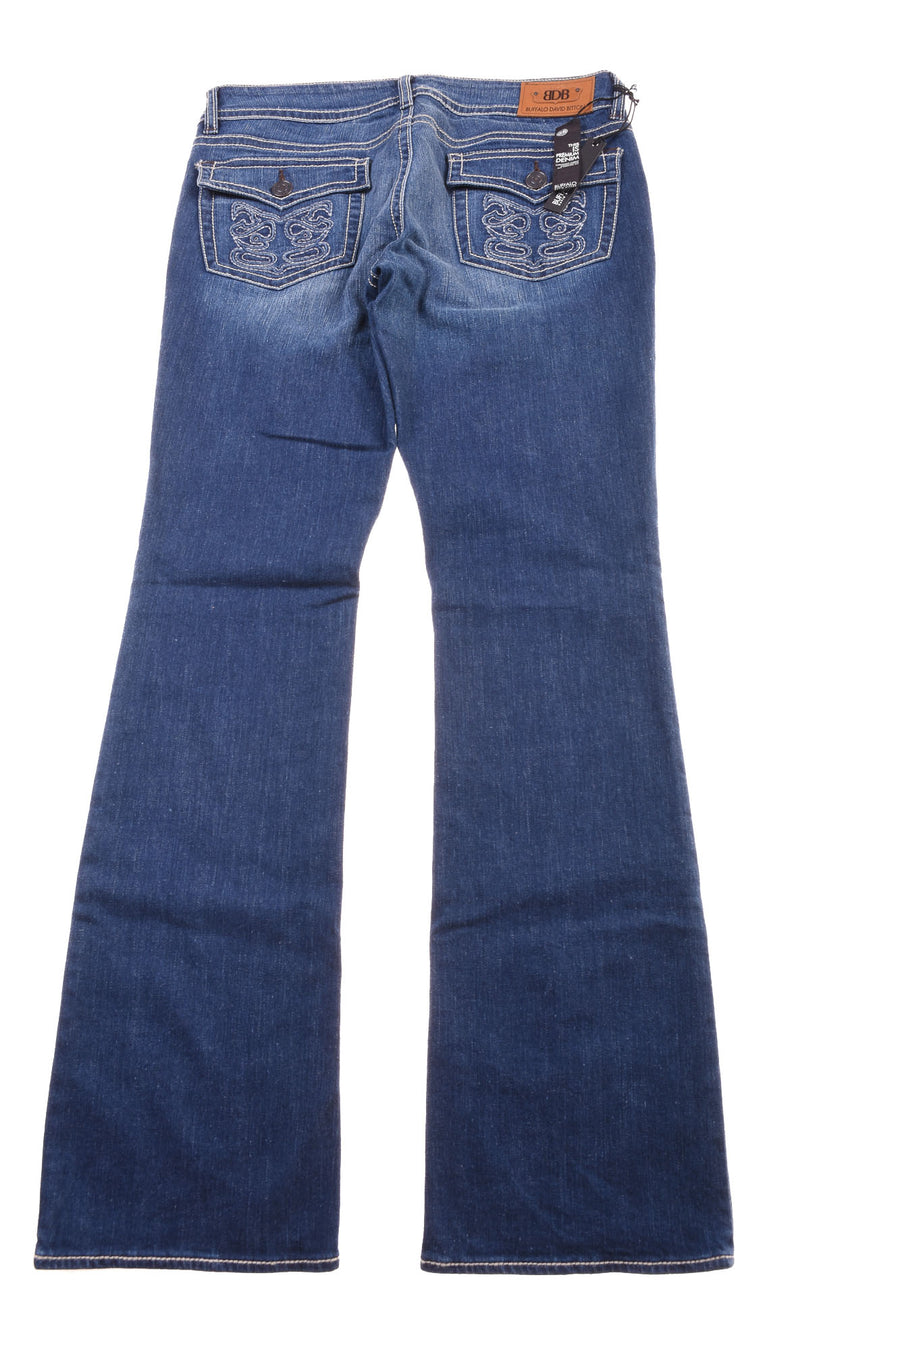 NEW  Buffalo David Bitton Women's Jeans 30 Blue